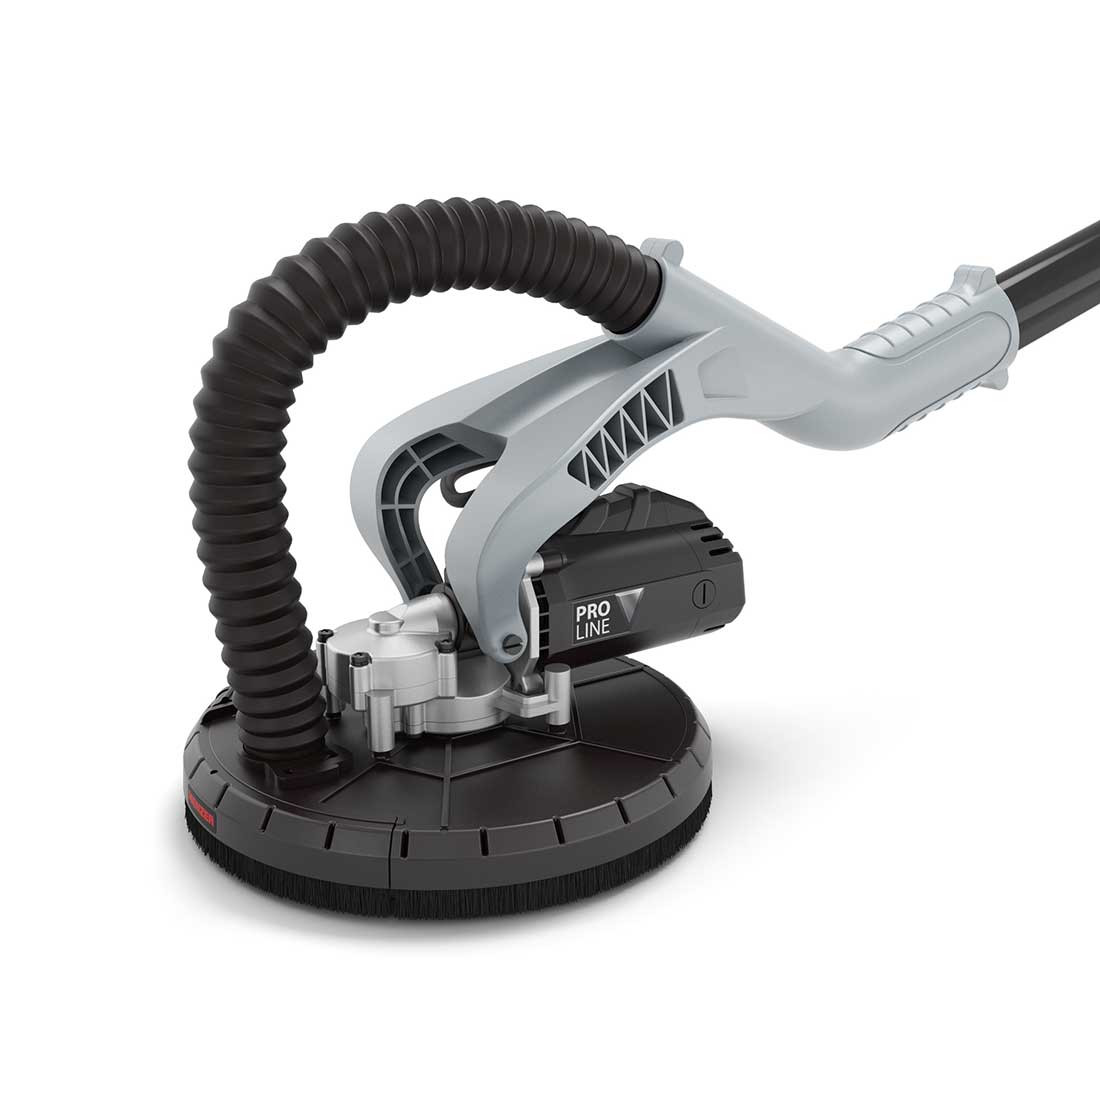 MENZER LHS 225 PRO flexible sanding head